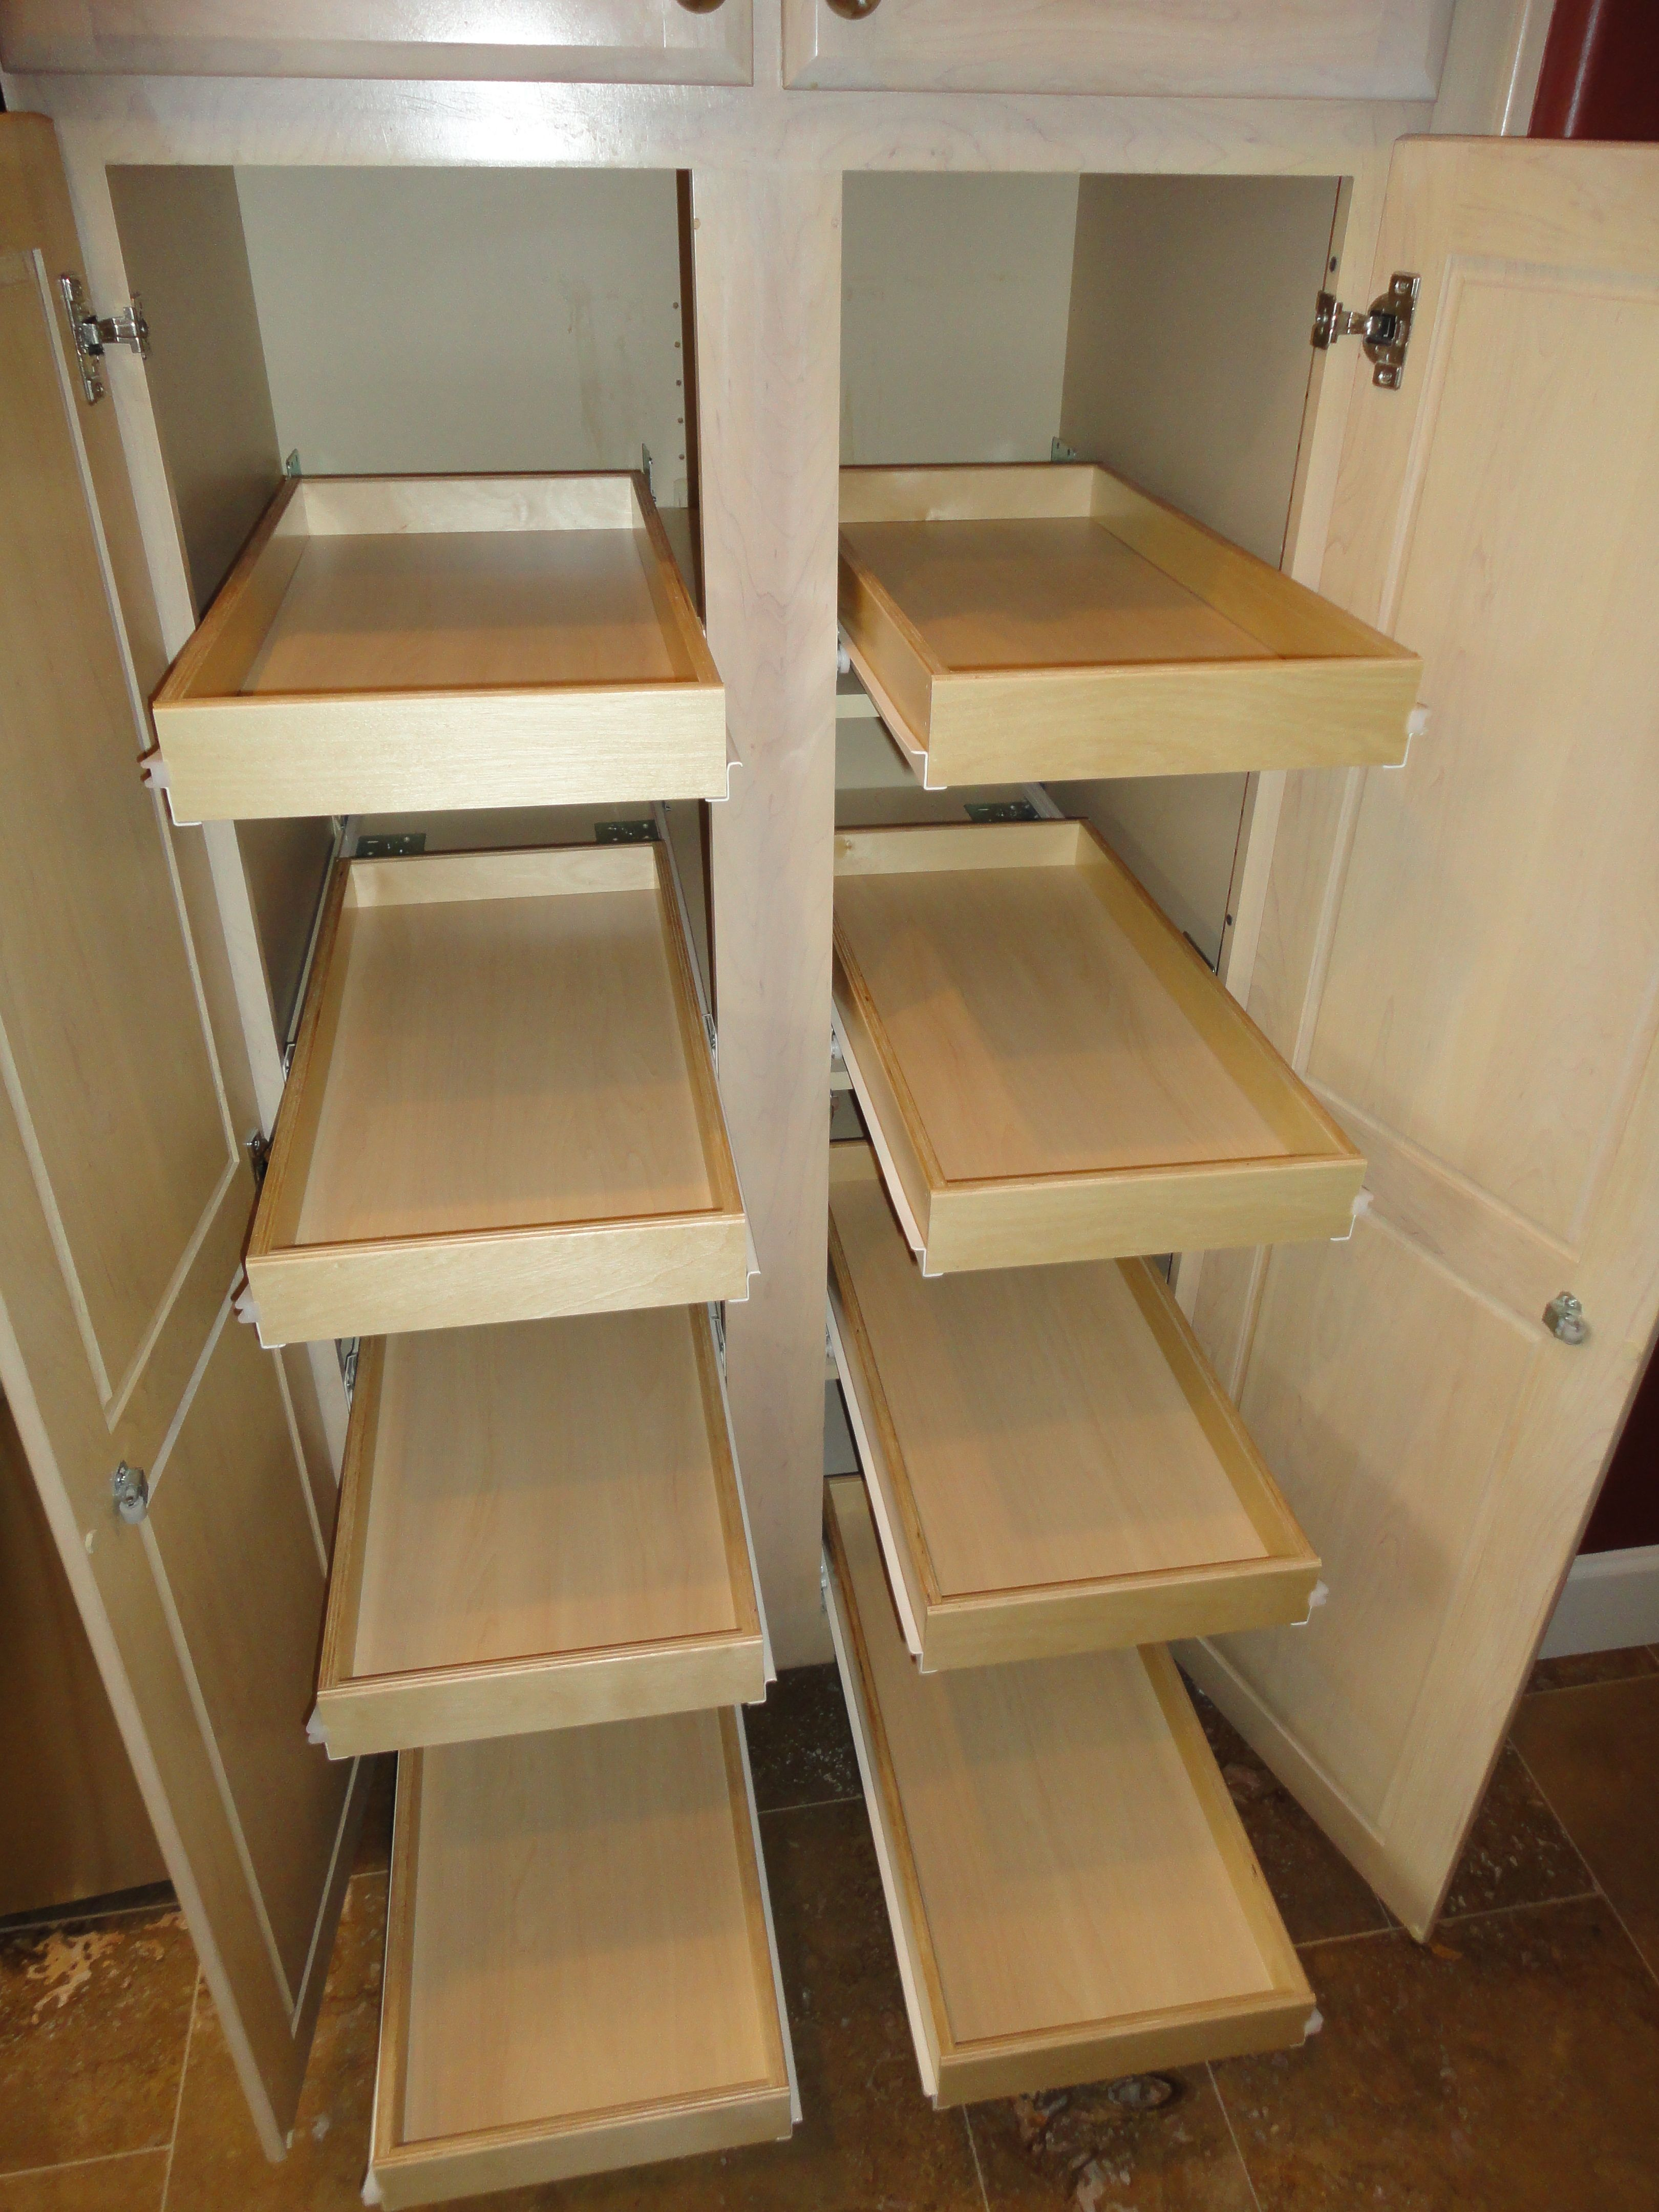 8 Slide Out Shelves Added To Pantry Cabinet | Oh Michele In 2019